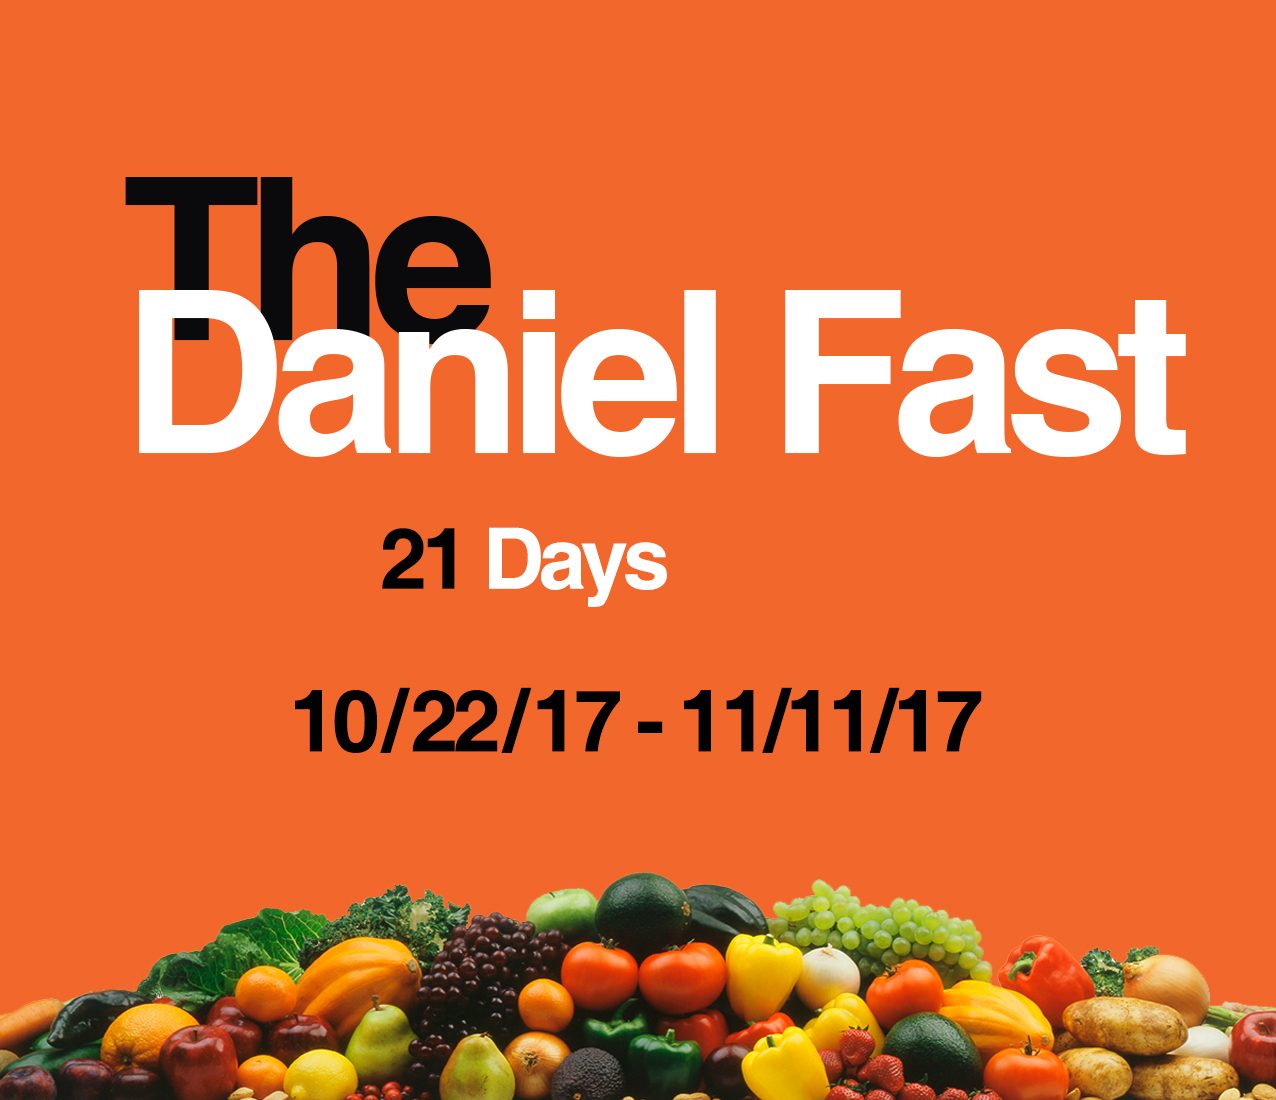 Daniel Fast Home Page Link.jpg